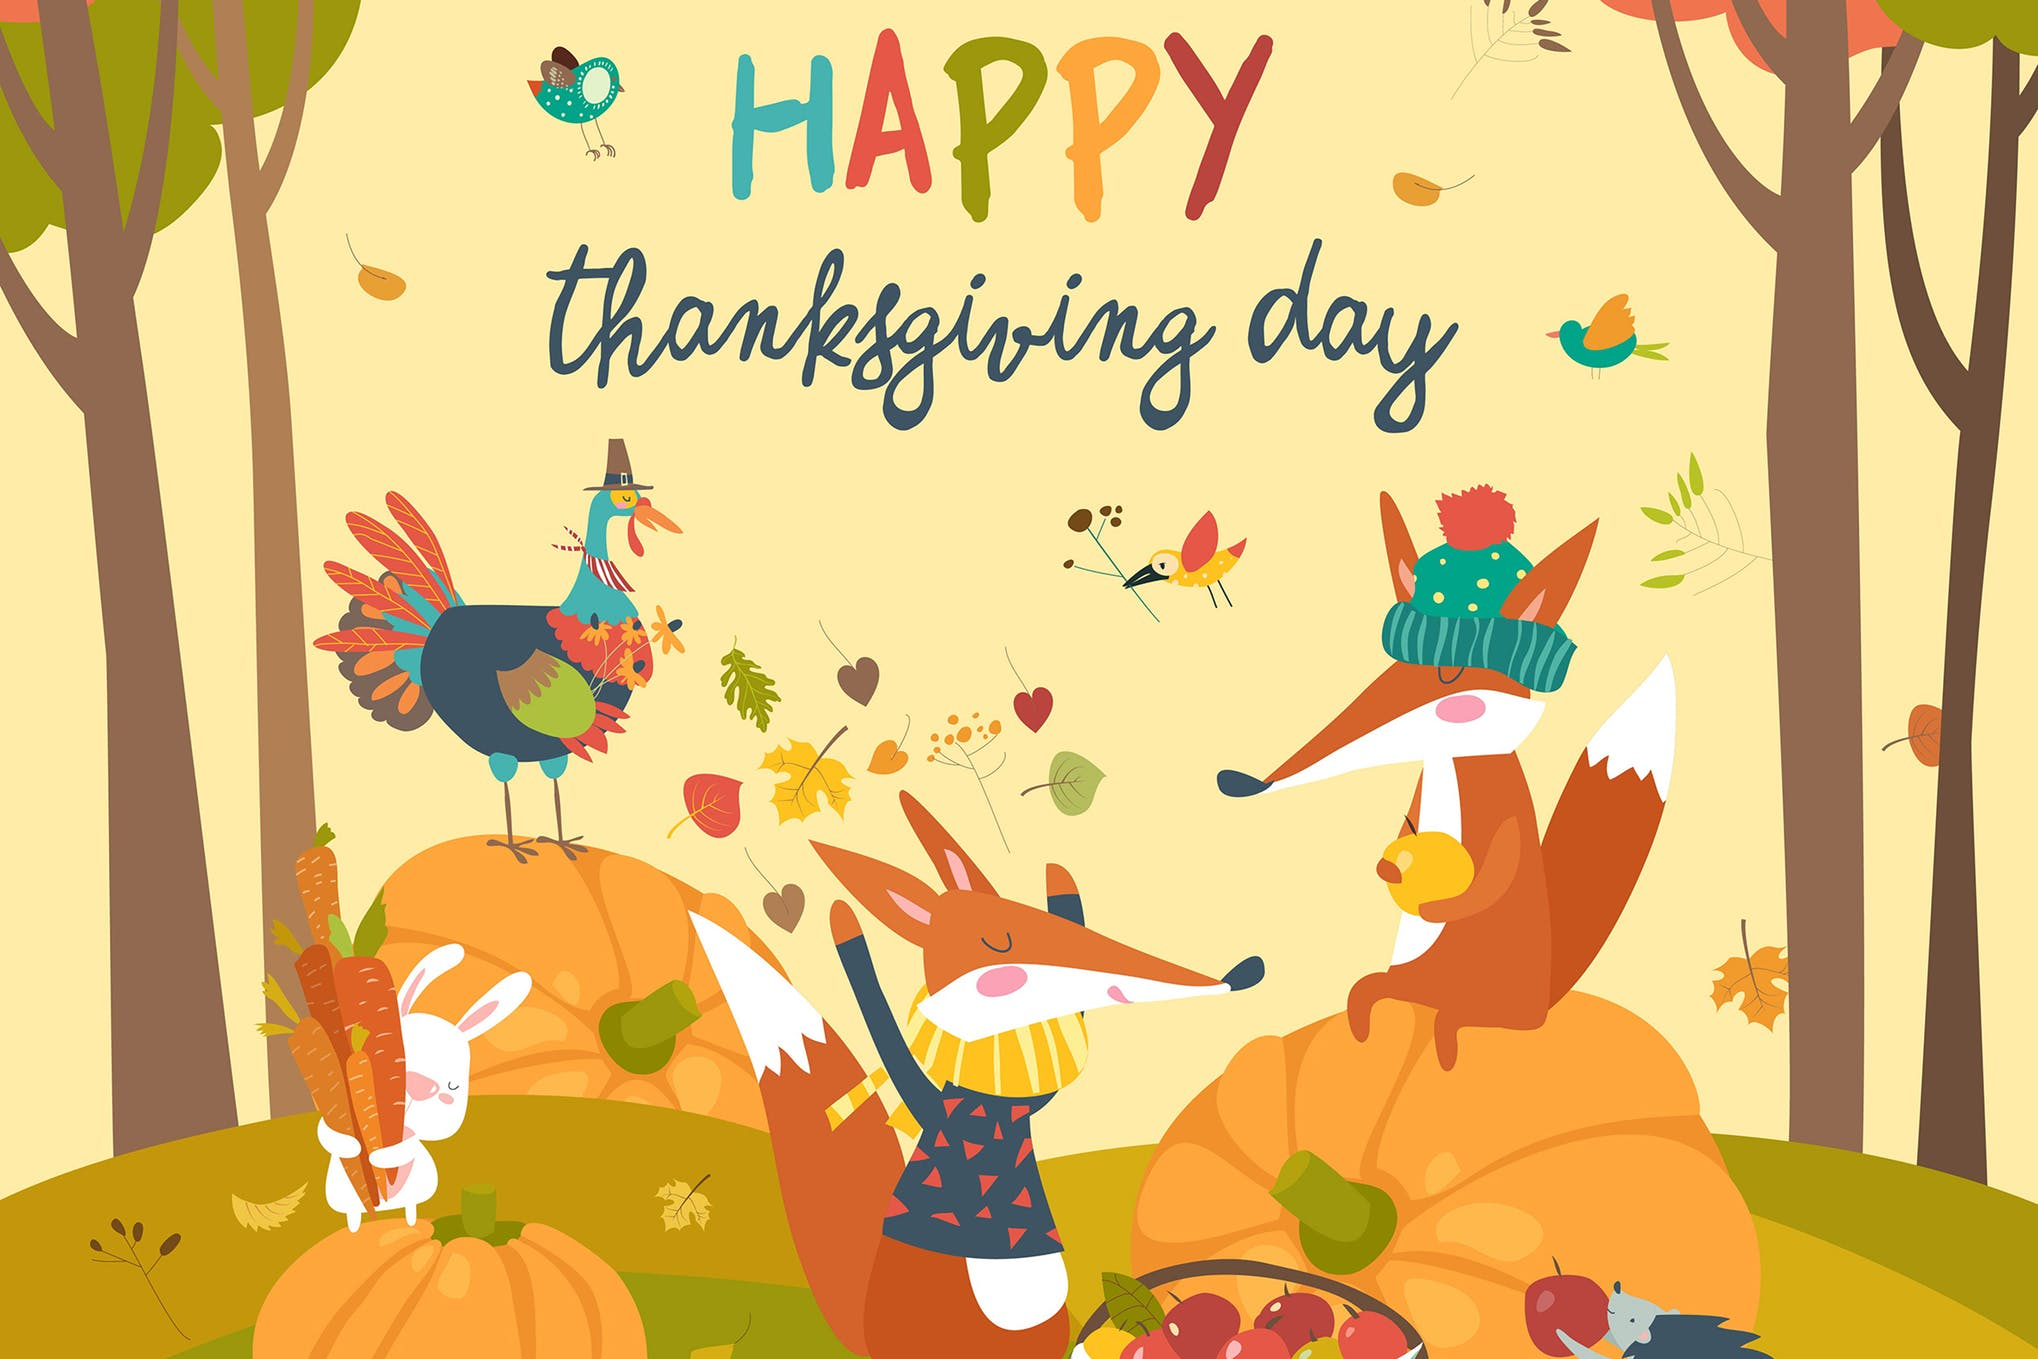 感恩节动物系列创意插画素材下载Cute animals celebrating Thanksgiving day. Vector